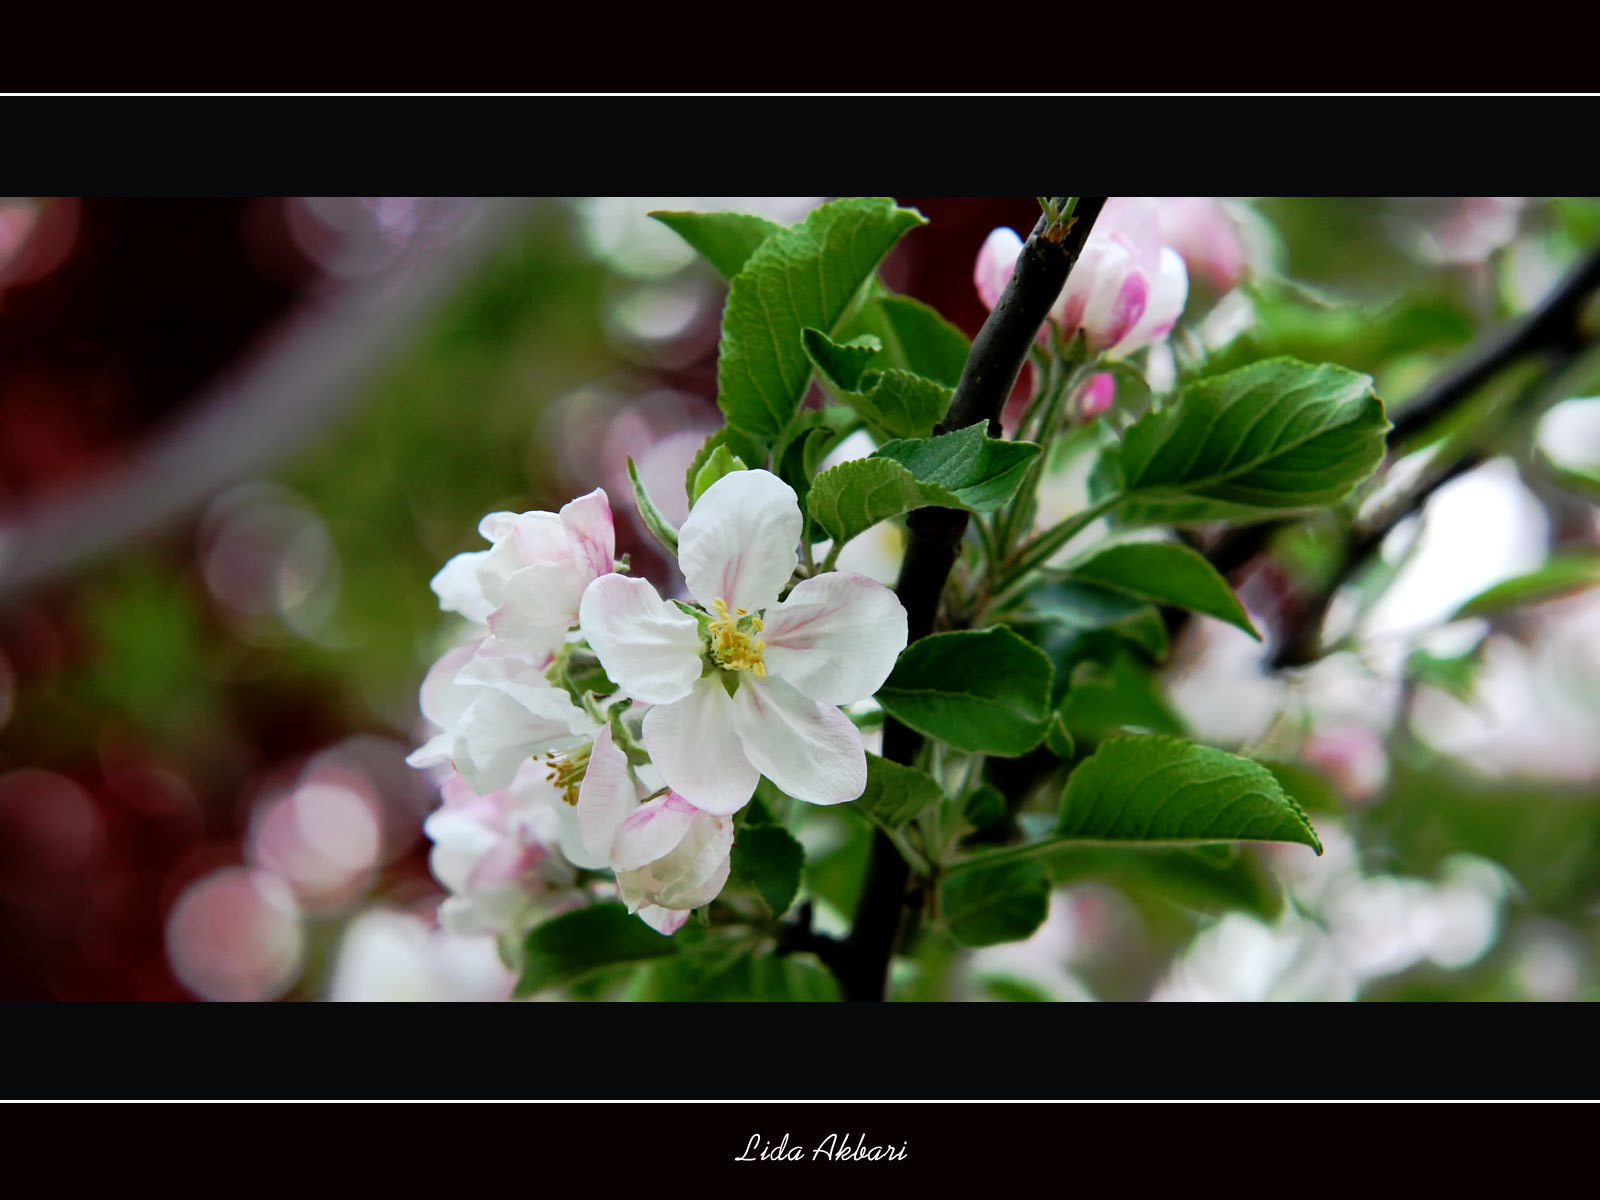 Photograph blossoms; colors playing! by happy girl on 500px